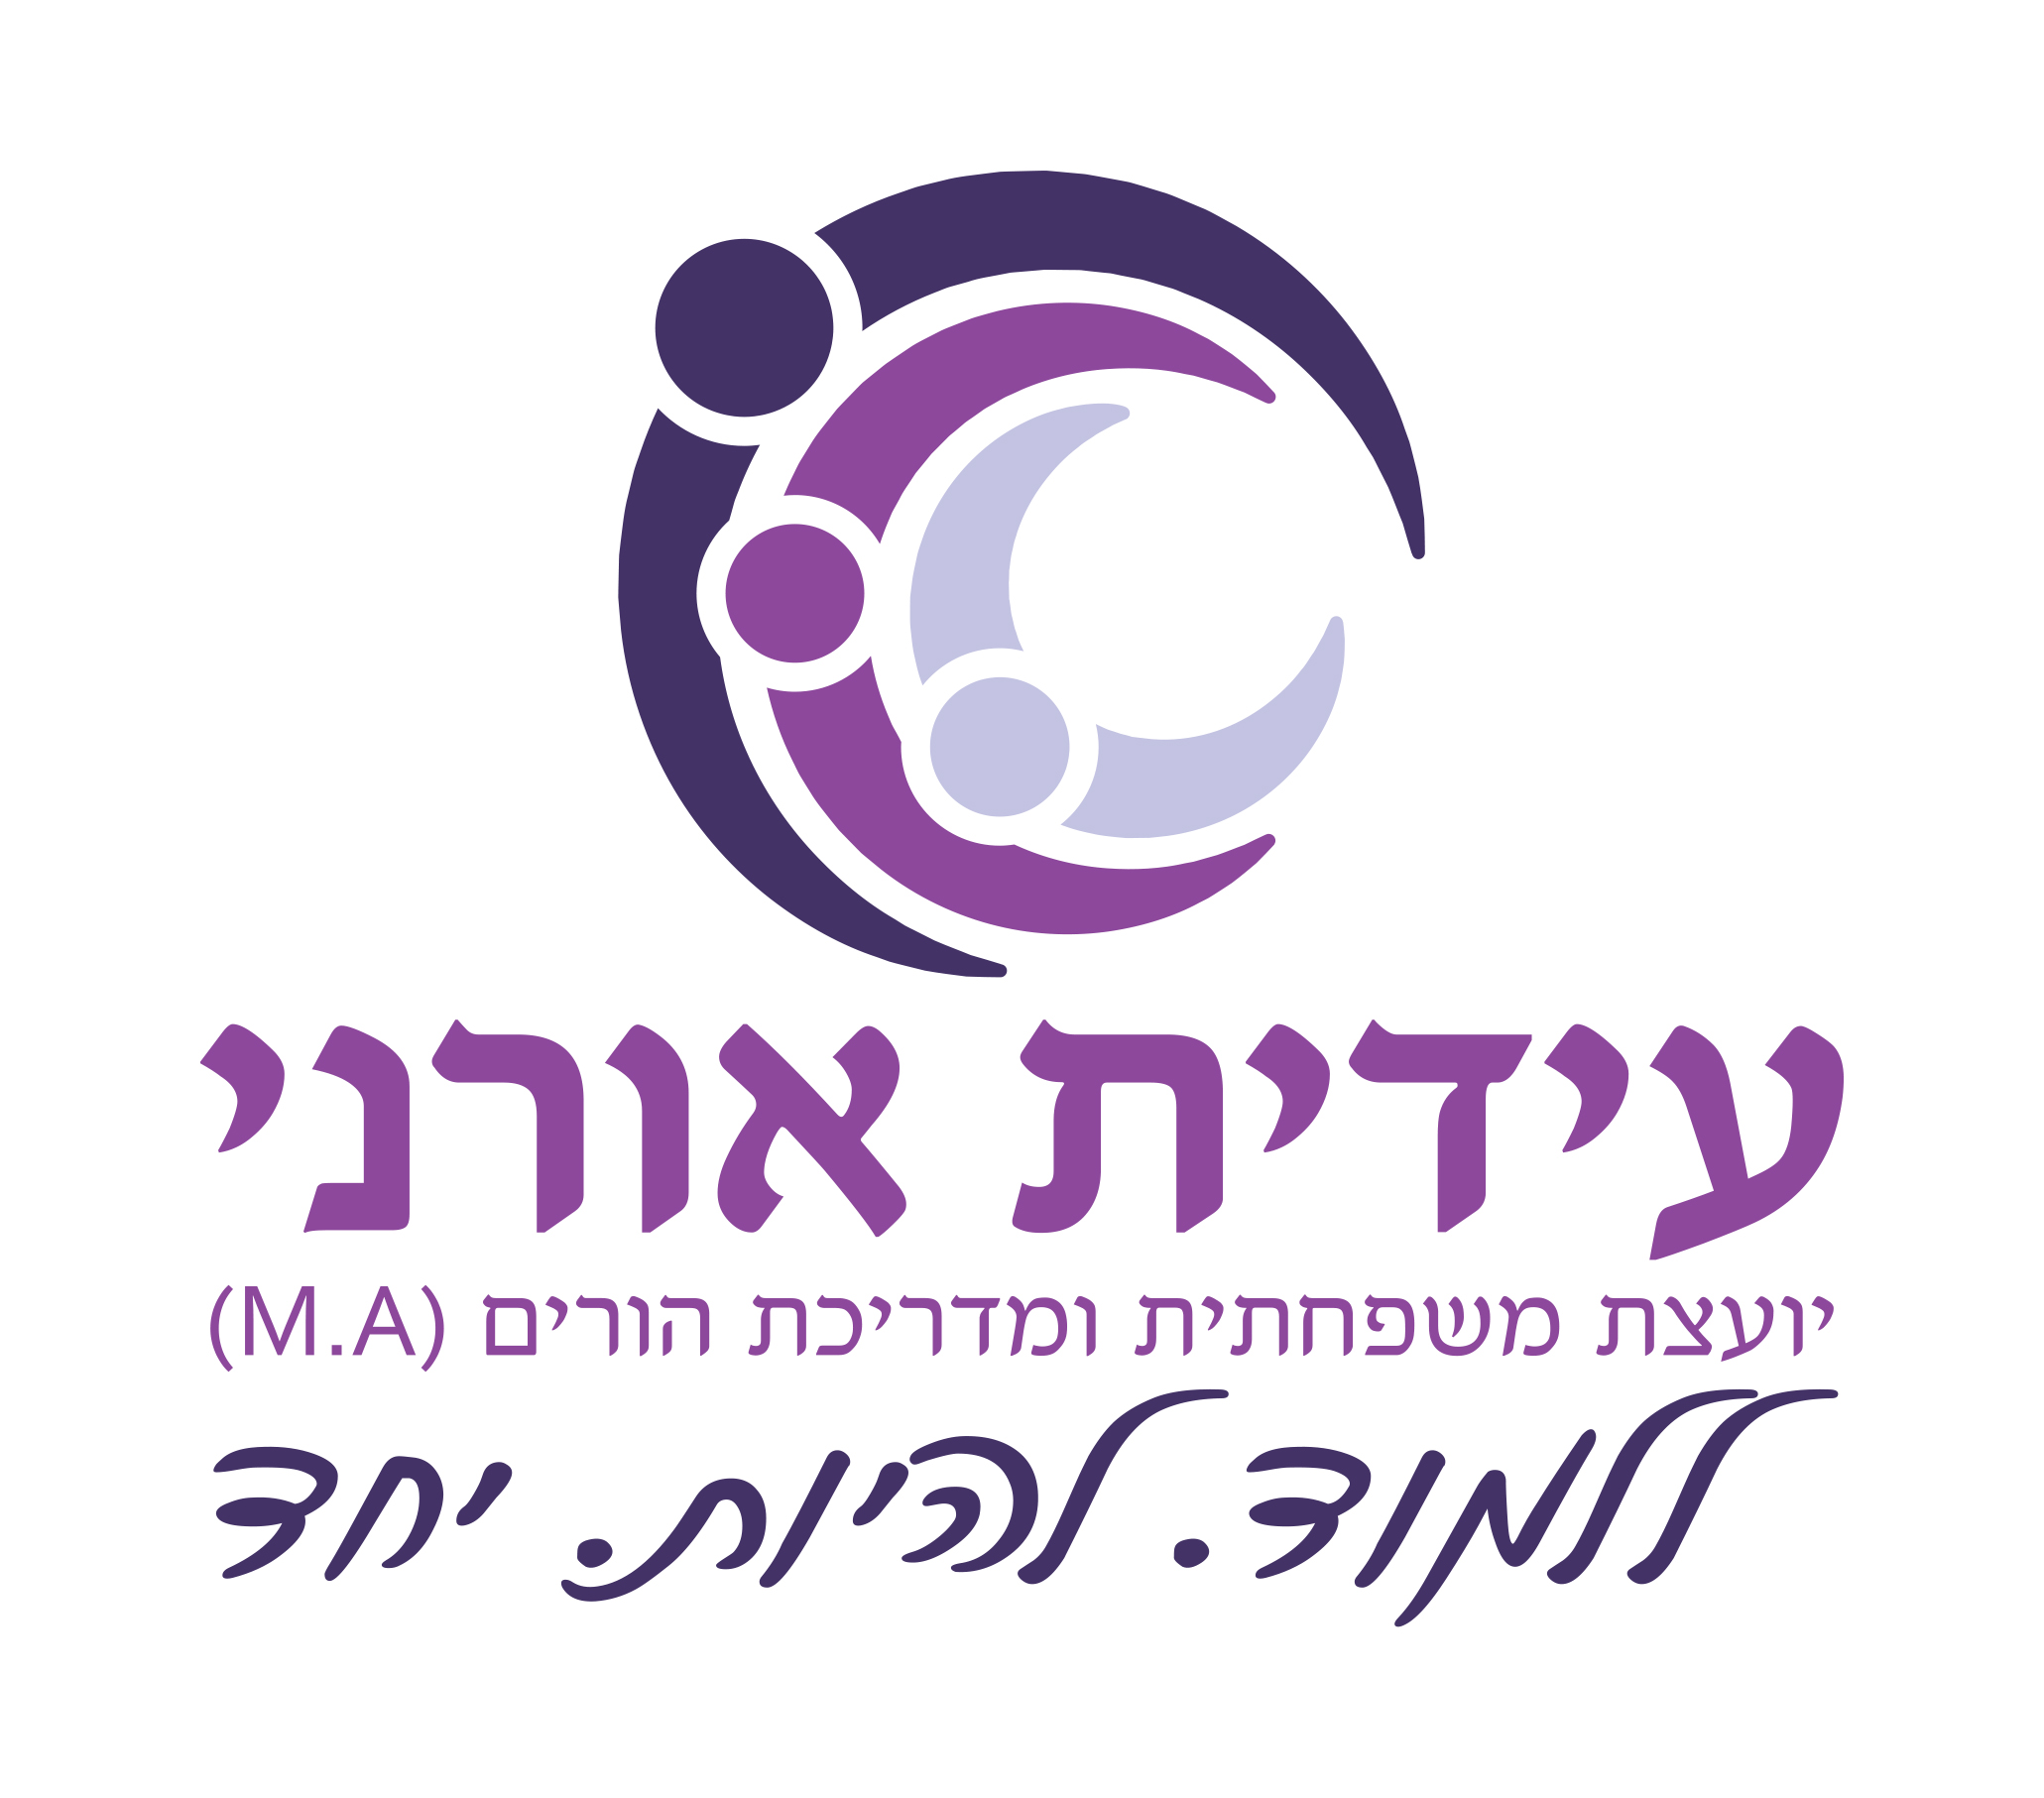 mishpaha-logo-updated לוגו.jpg